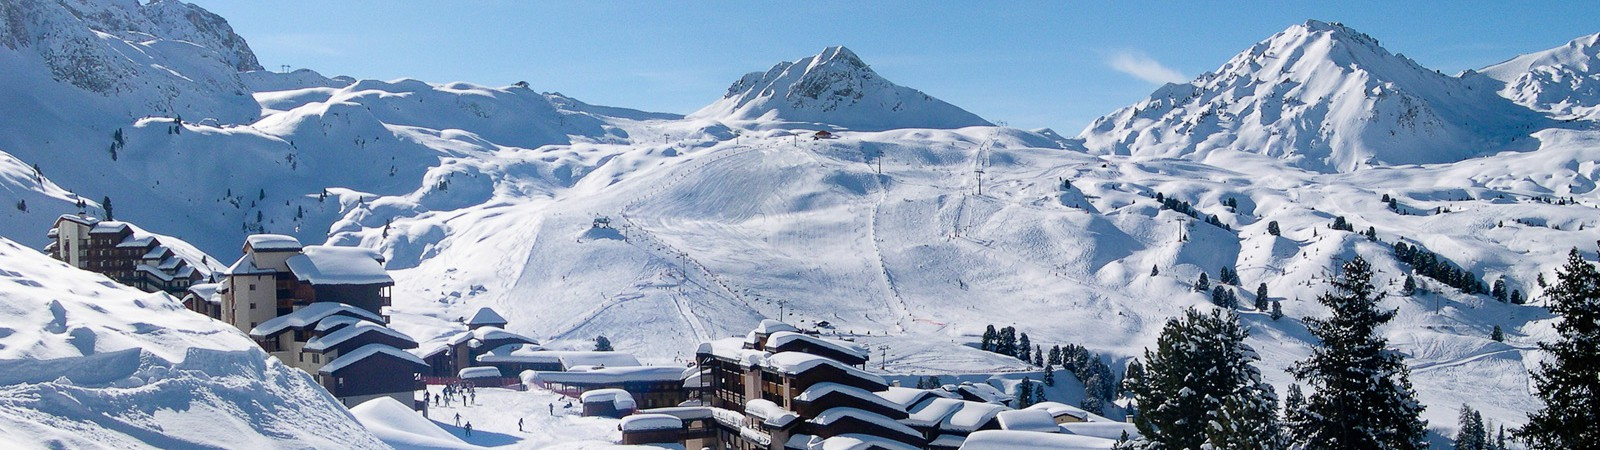 Winter landschap La Plagne